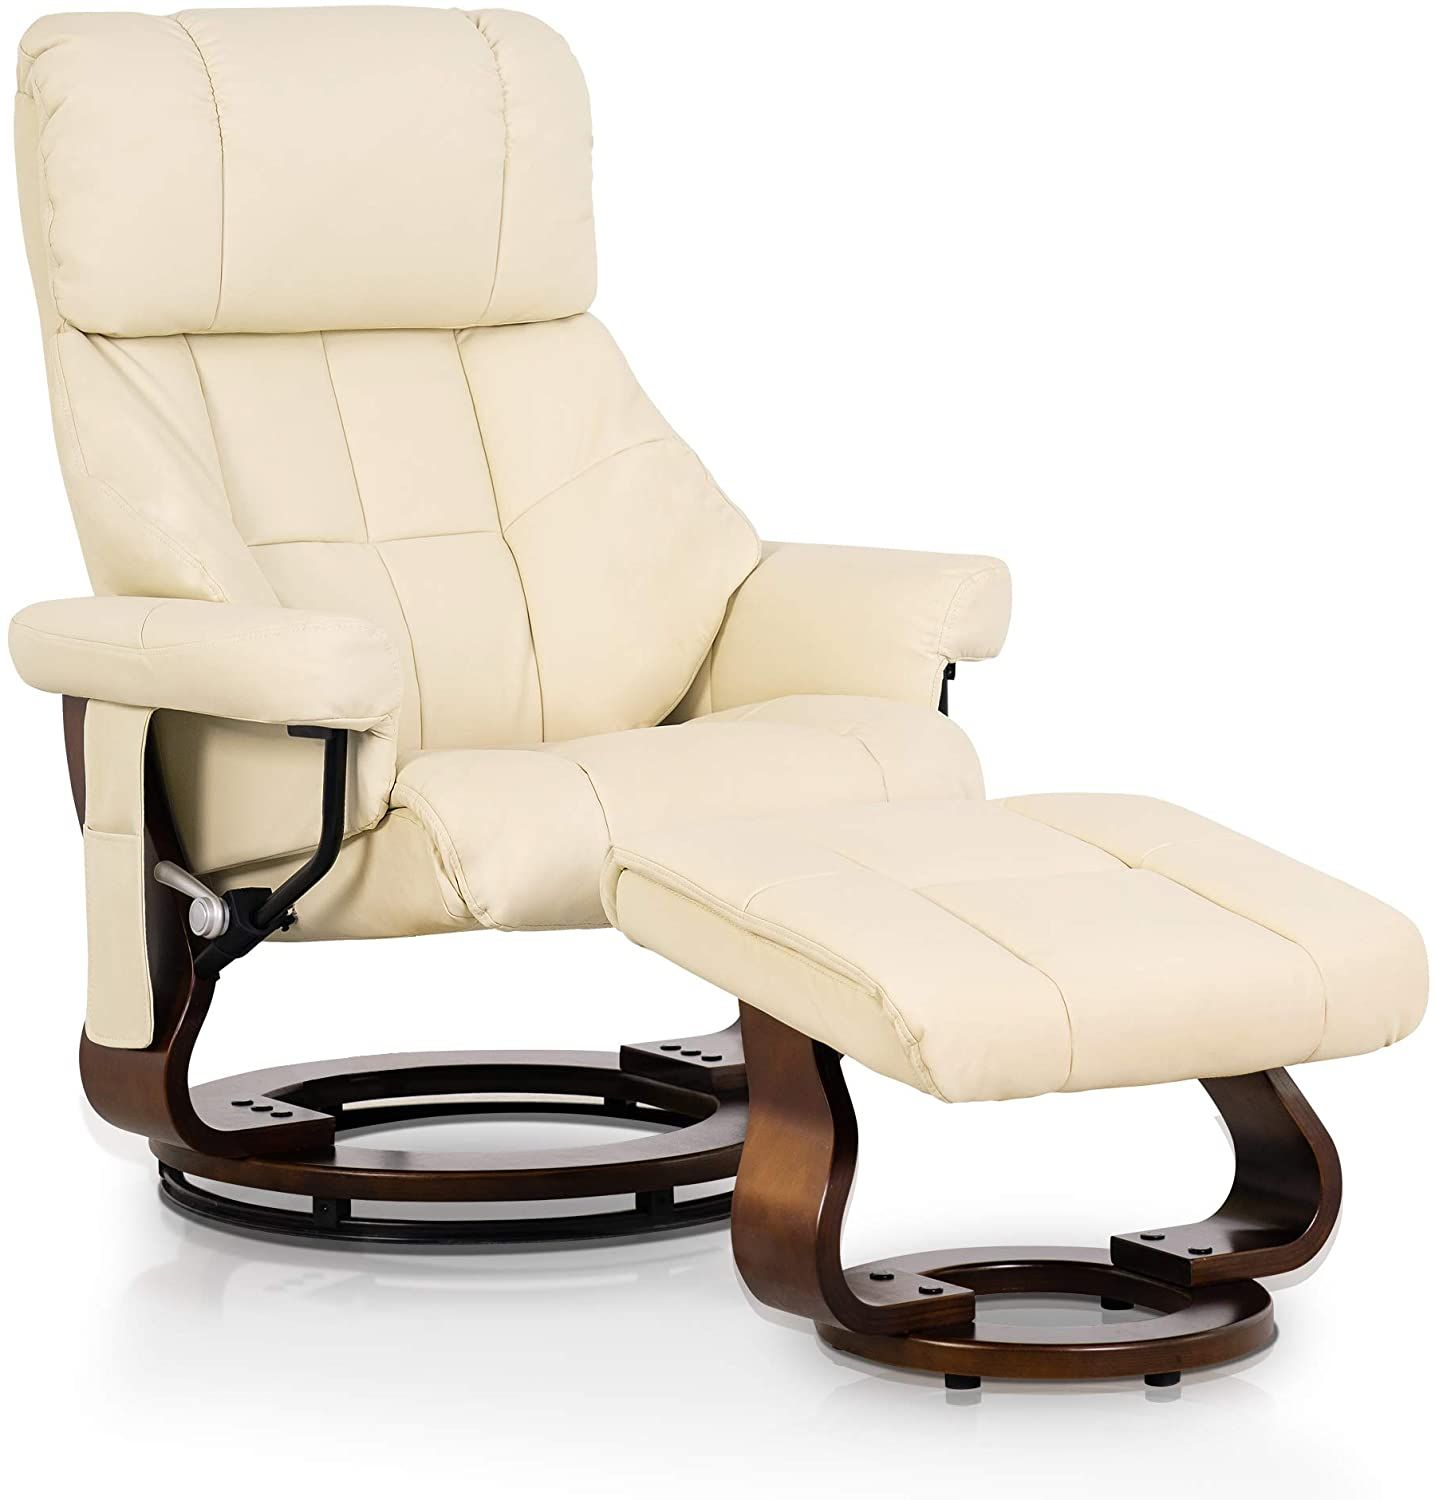 Pin on Luxury Recliners & Home Furniture Ideas